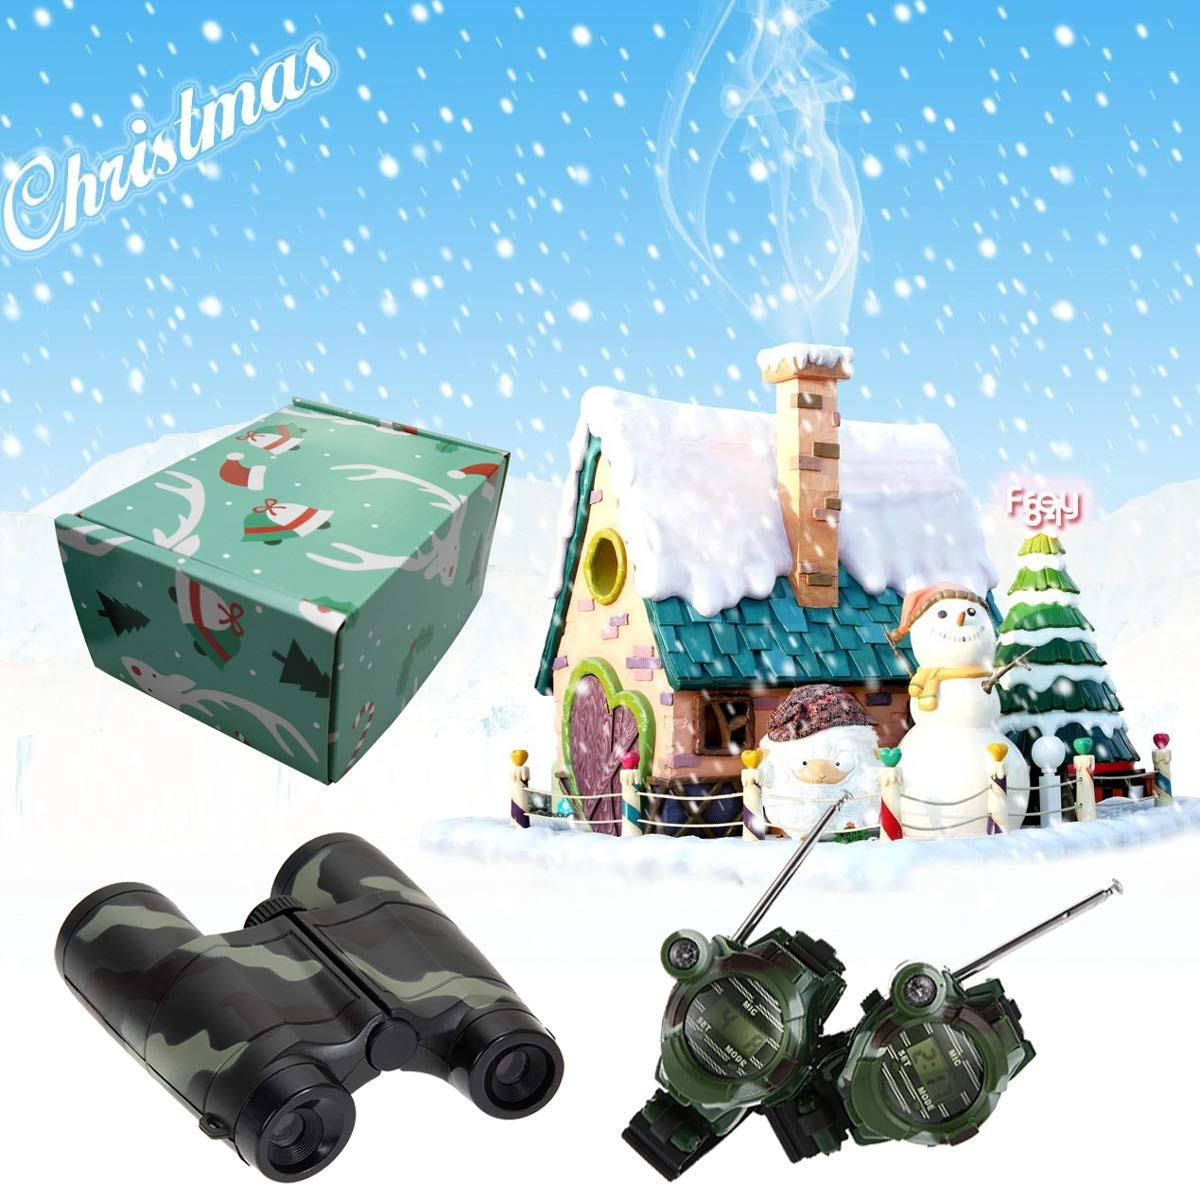 Petask Kids Walkie Talkies and Binoculars for Kids - Outdoor Toys Two-Way Radios Walky Talky for Children, Cool Outdoor Walkie Talkie Kit for Boys and Girls + Kids Binoculars, Camouflage by Petask (Image #7)